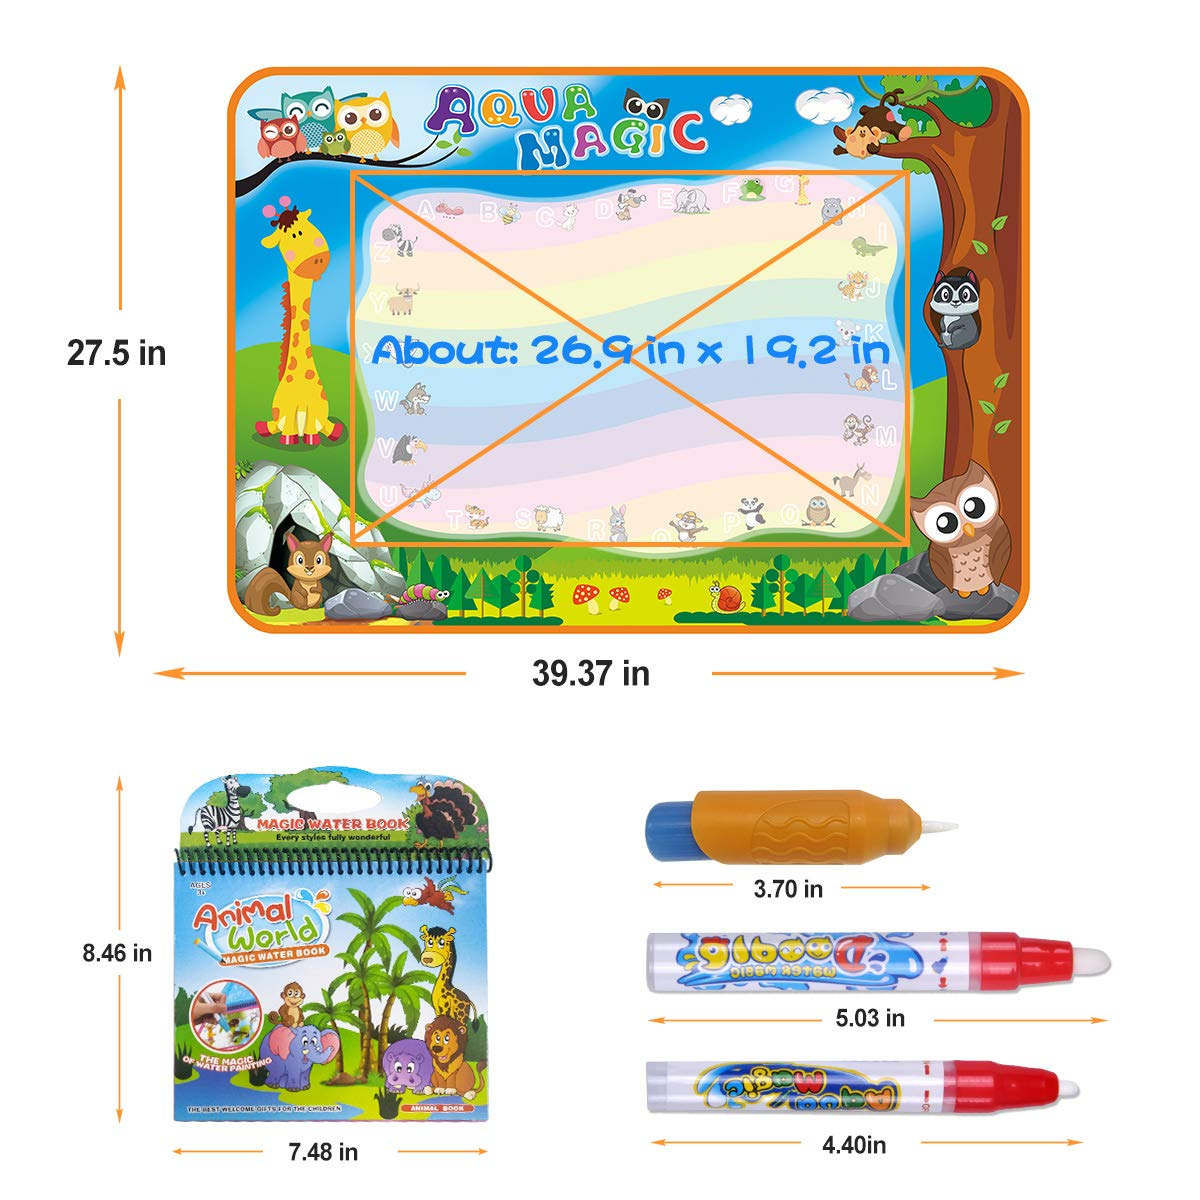 7 Colors Kids Educational Travel Toy Gift for Boys Girls Toddlers Meland Large Water Doodle Mat Aqua Doodle Mat 39.37 x 27.5 inch with 4 Water Pens and 8 Molds and a Water Coloring Book